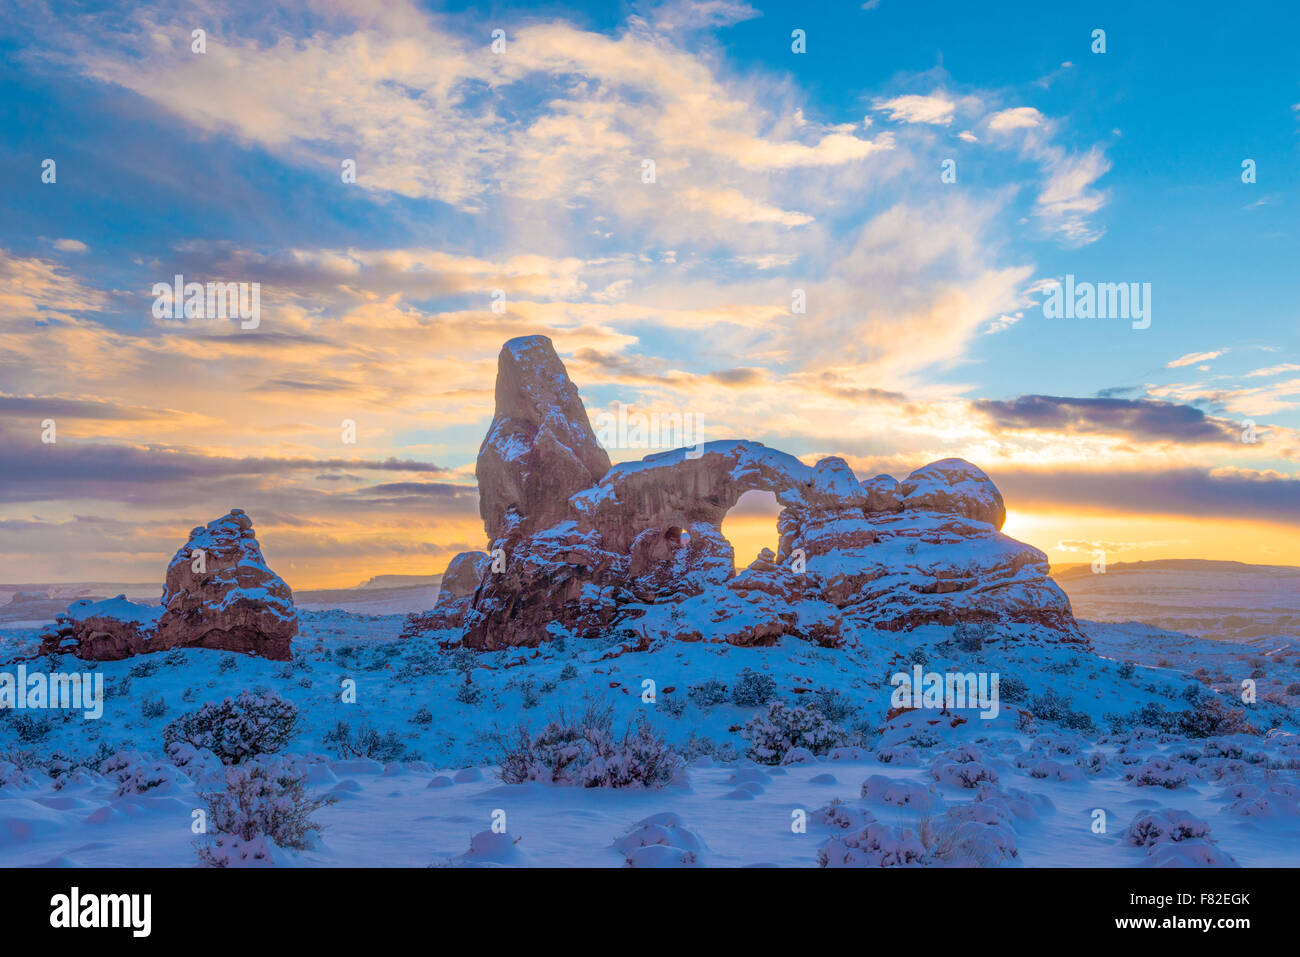 Snowy sunset at Turret Arch, Arches National Park, Utah Windows Section - Stock Image